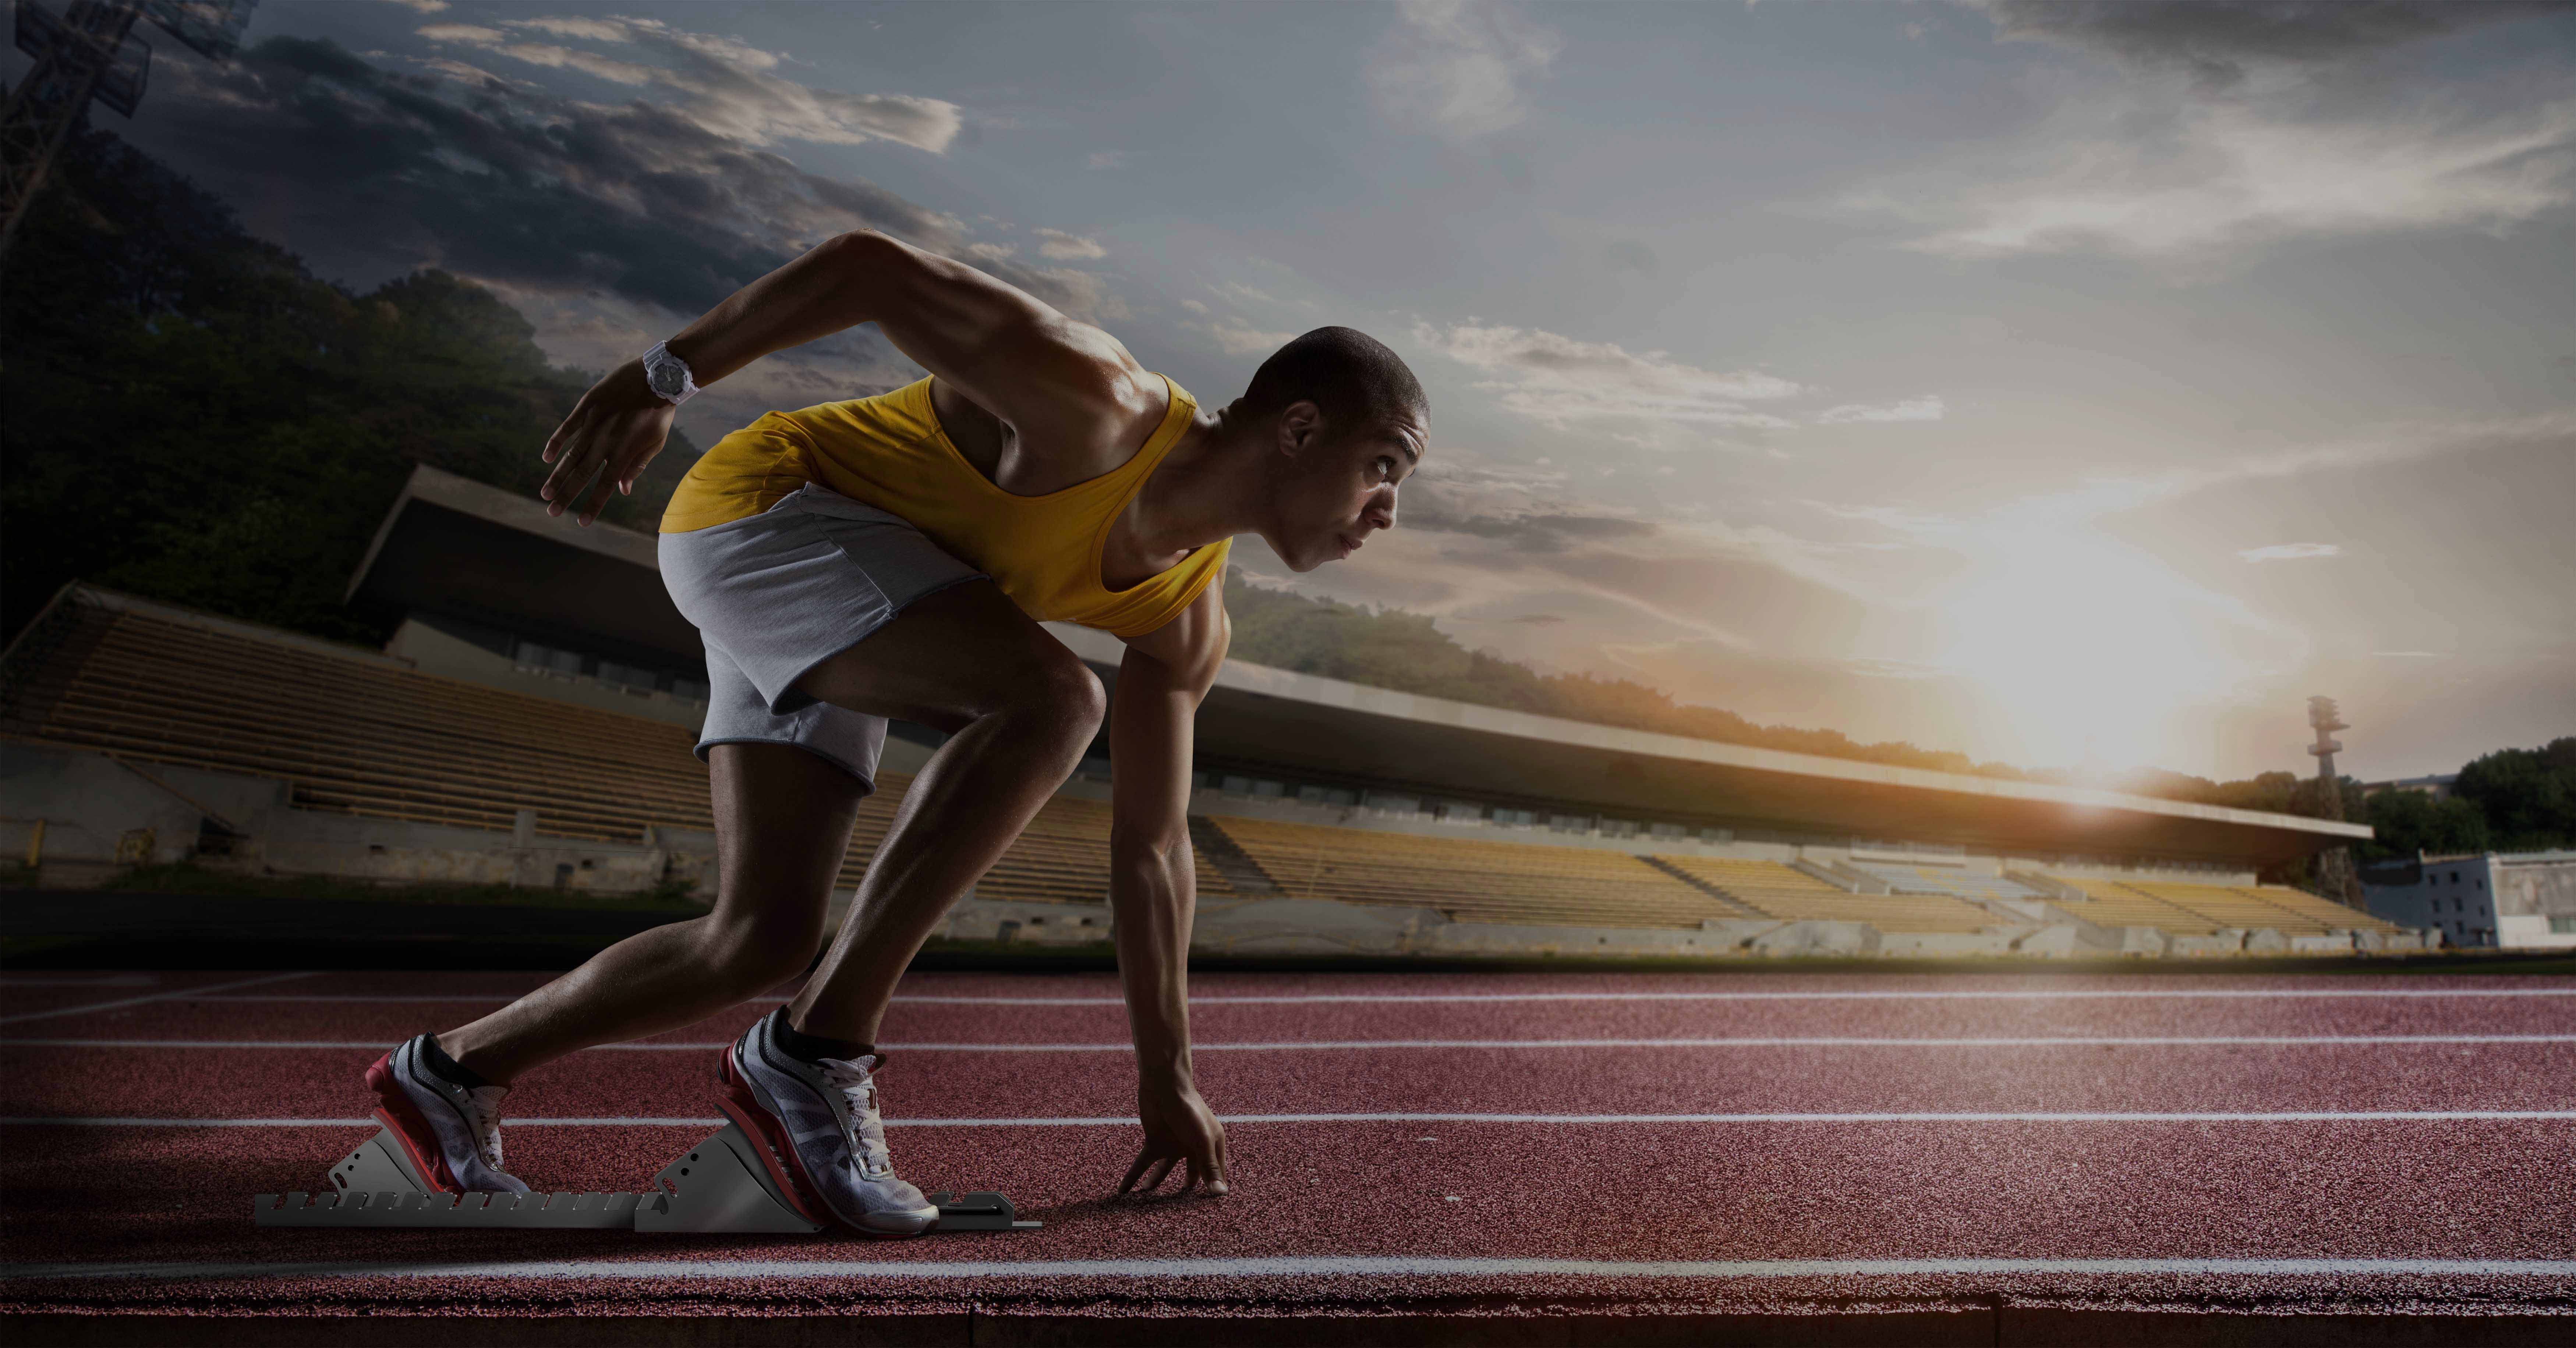 ACCELERATE YOUR IT SERVICES